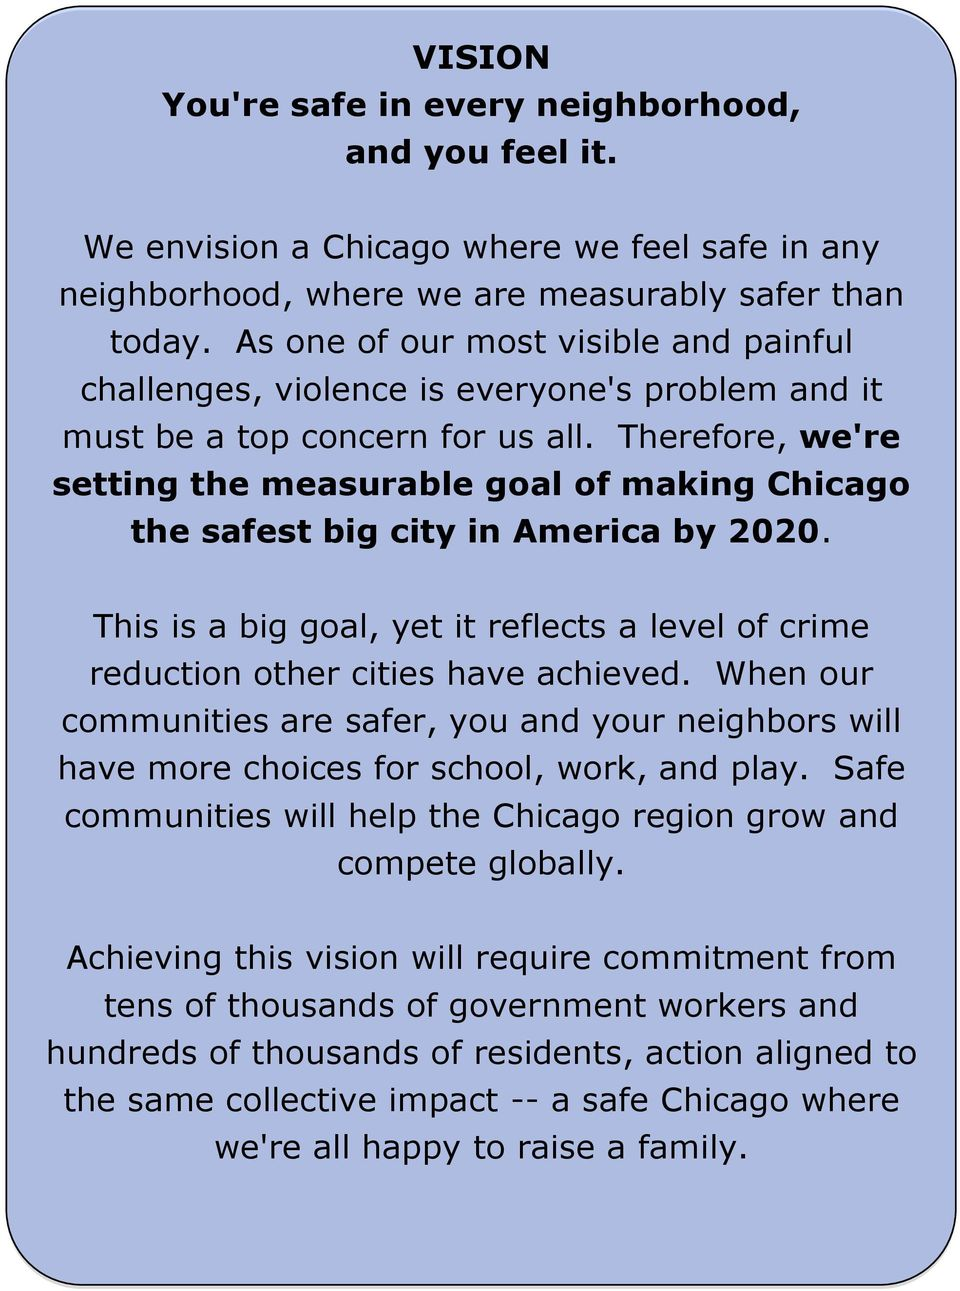 Therefore, we're setting the measurable goal of making Chicago the safest big city in America by 2020. This is a big goal, yet it reflects a level of crime reduction other cities have achieved.